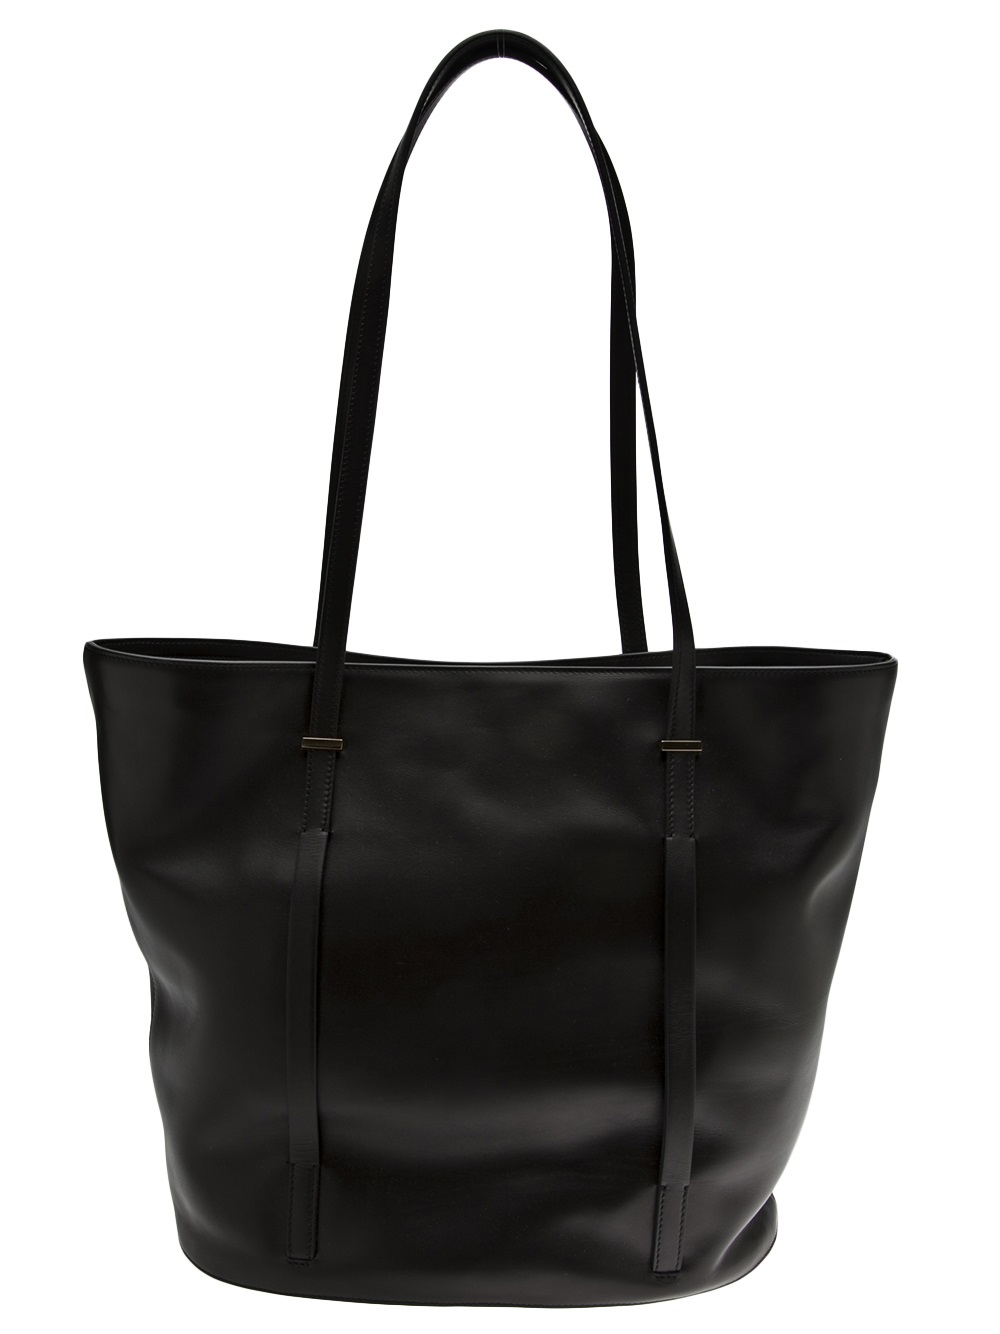 The Row The Row Large Tote Bag In Black Lyst